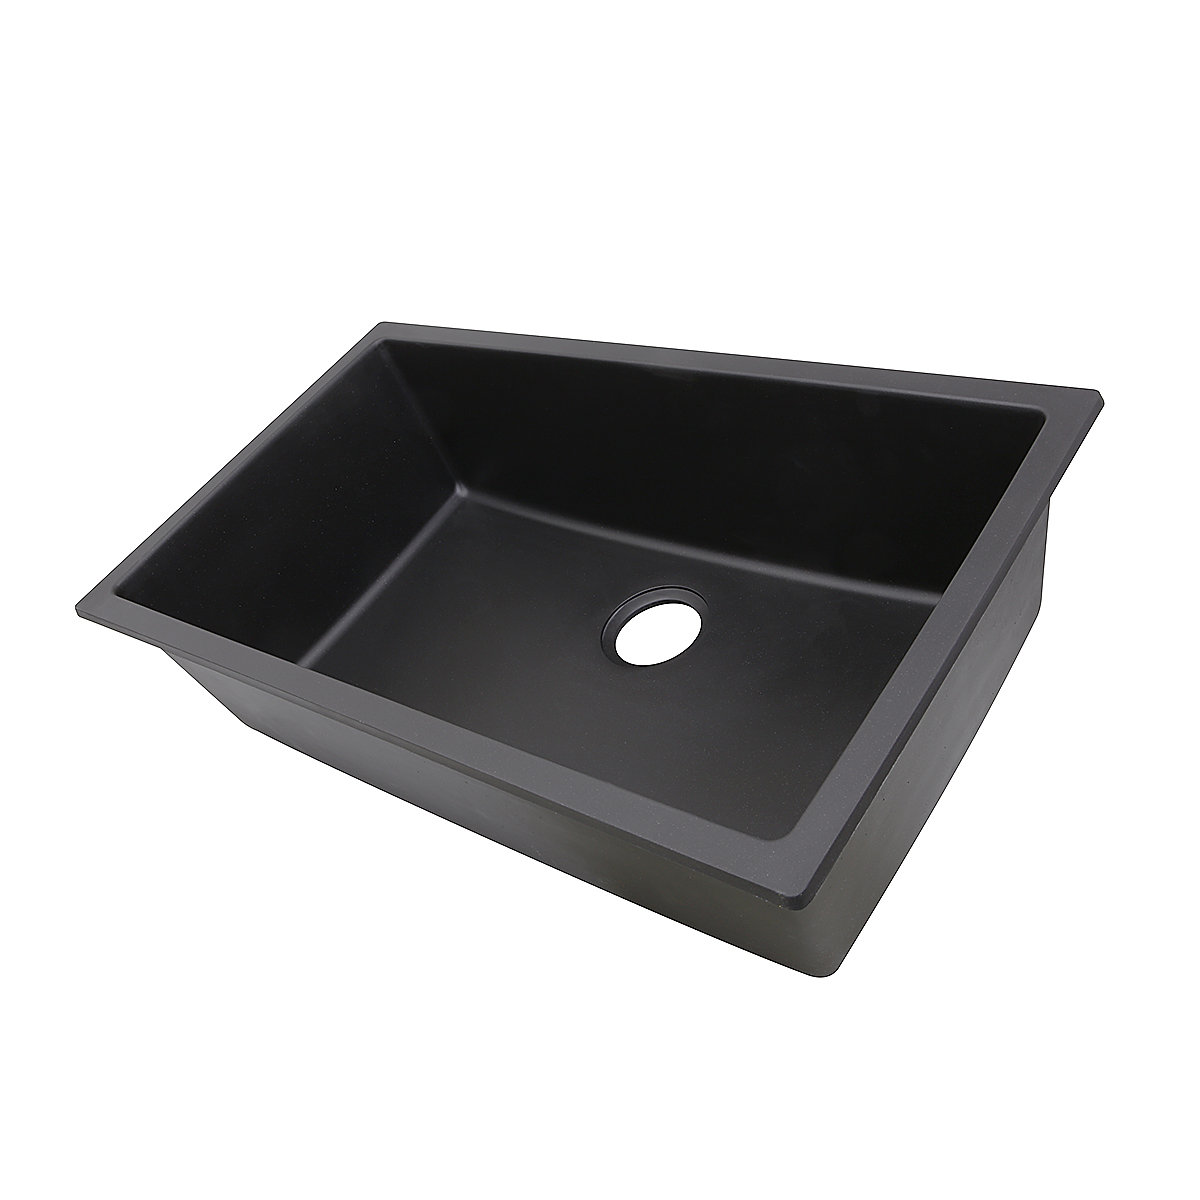 Highpoint Collectionu0027s Black Granite Composite Undermount Sink Looks Great  In Any Kitchen. The Granite Composite Material Makes It Easy To Maintain  With ...